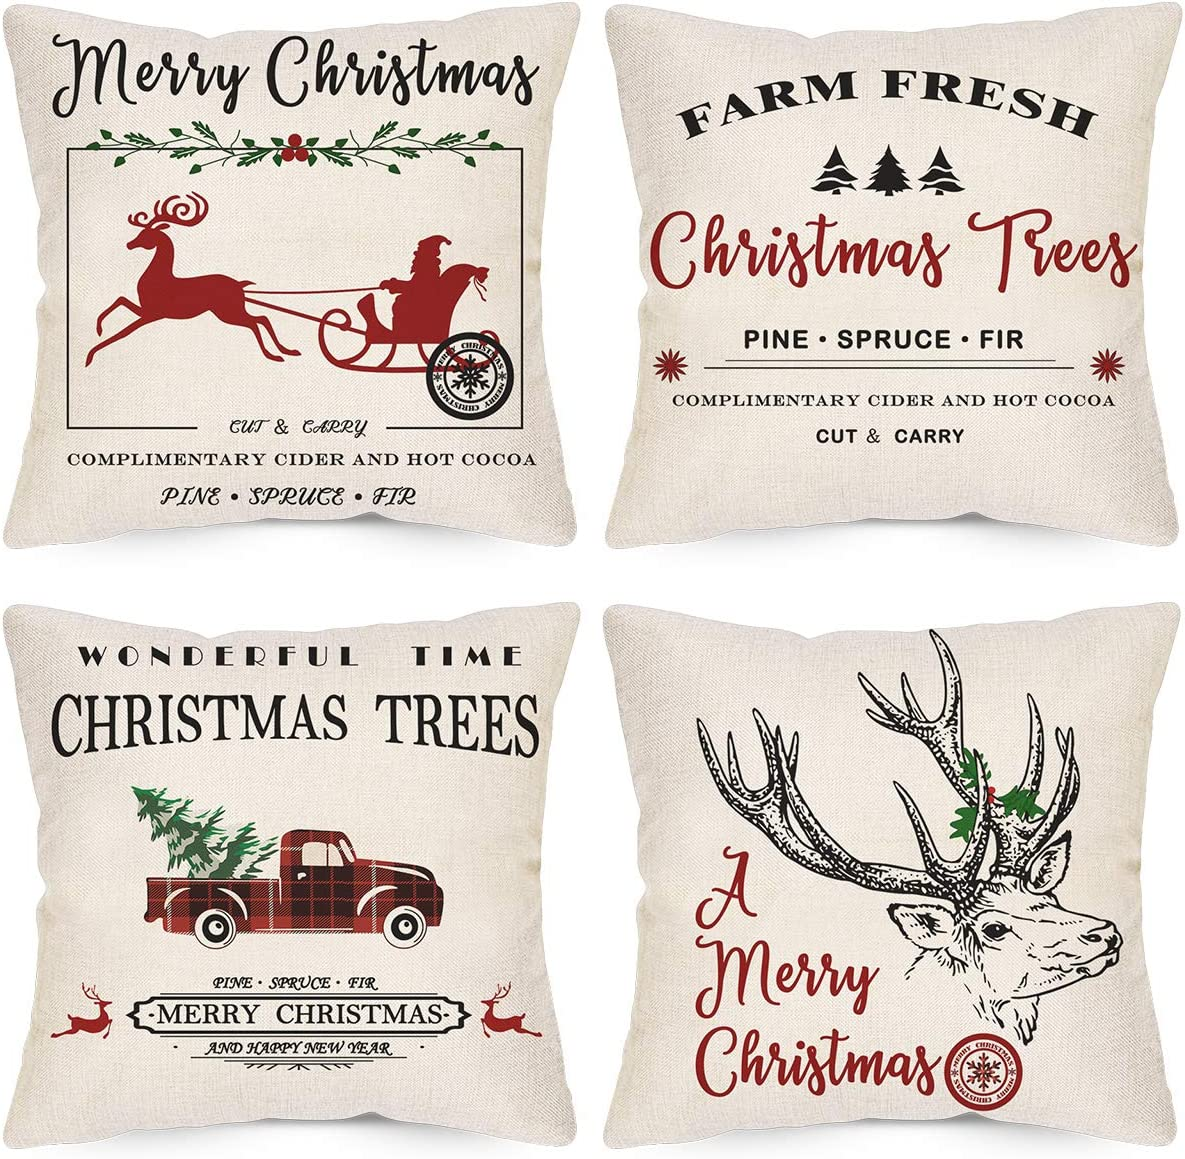 Laveve Christmas Pillow Covers Set Of 4 Cotton Linen Merry Christmas Reindeer Gharry Pillow Covers 18x18 Inch Farm Fresh Christmas Tress Car Cushion Case For Couch And Bed Amazon Co Uk Kitchen Home